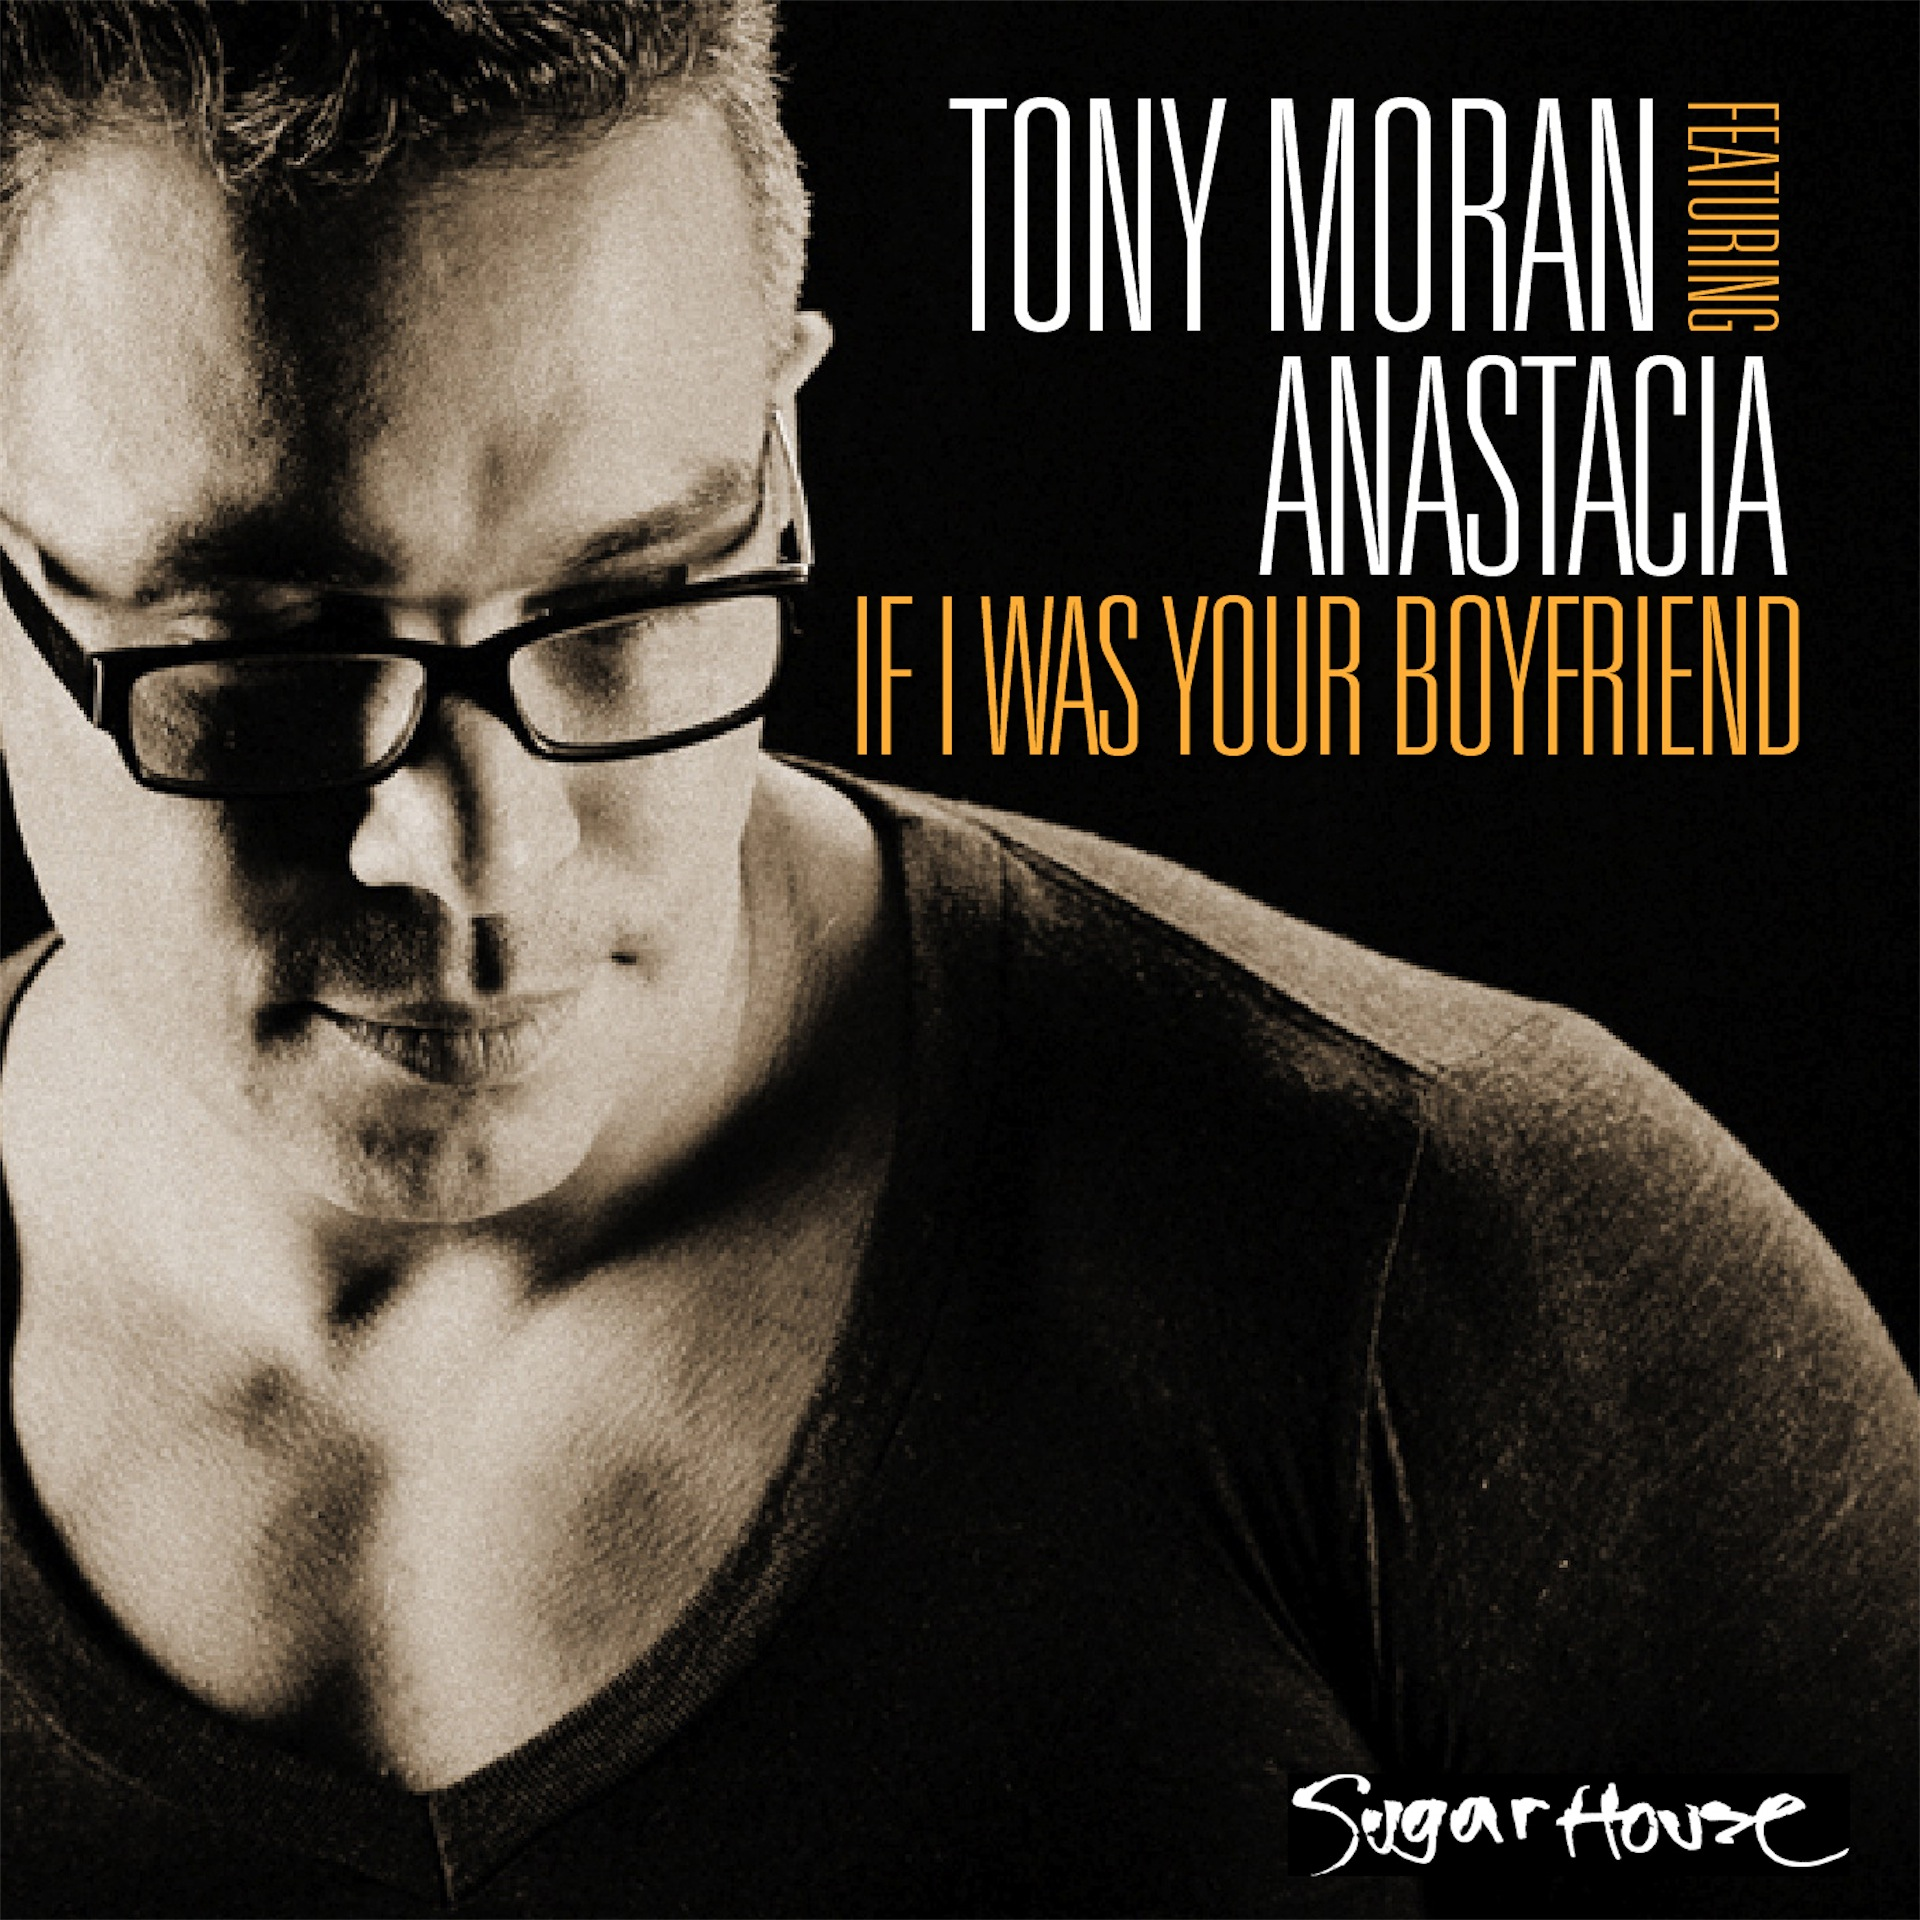 Tony Moran feat. Anastacia - If I Was Your Boyfriend